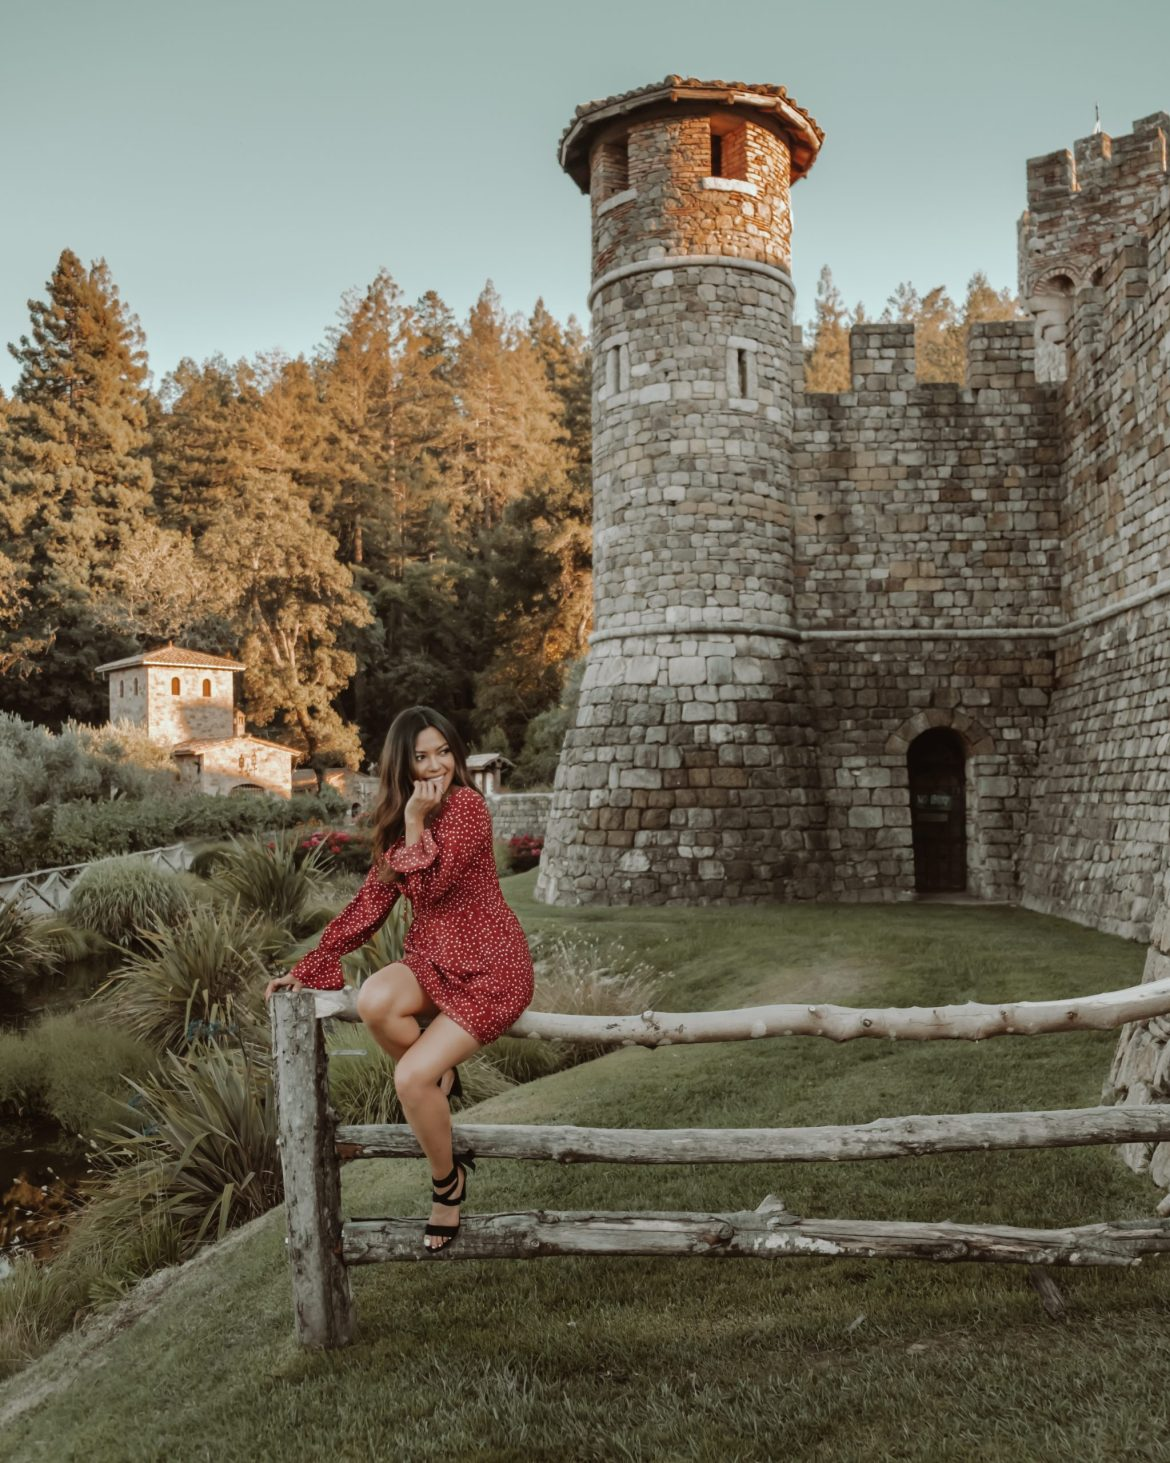 6 Epic Day Trips From San Francisco - Napa Valley outfit, Napa Valley photography, Napa Valley things to do